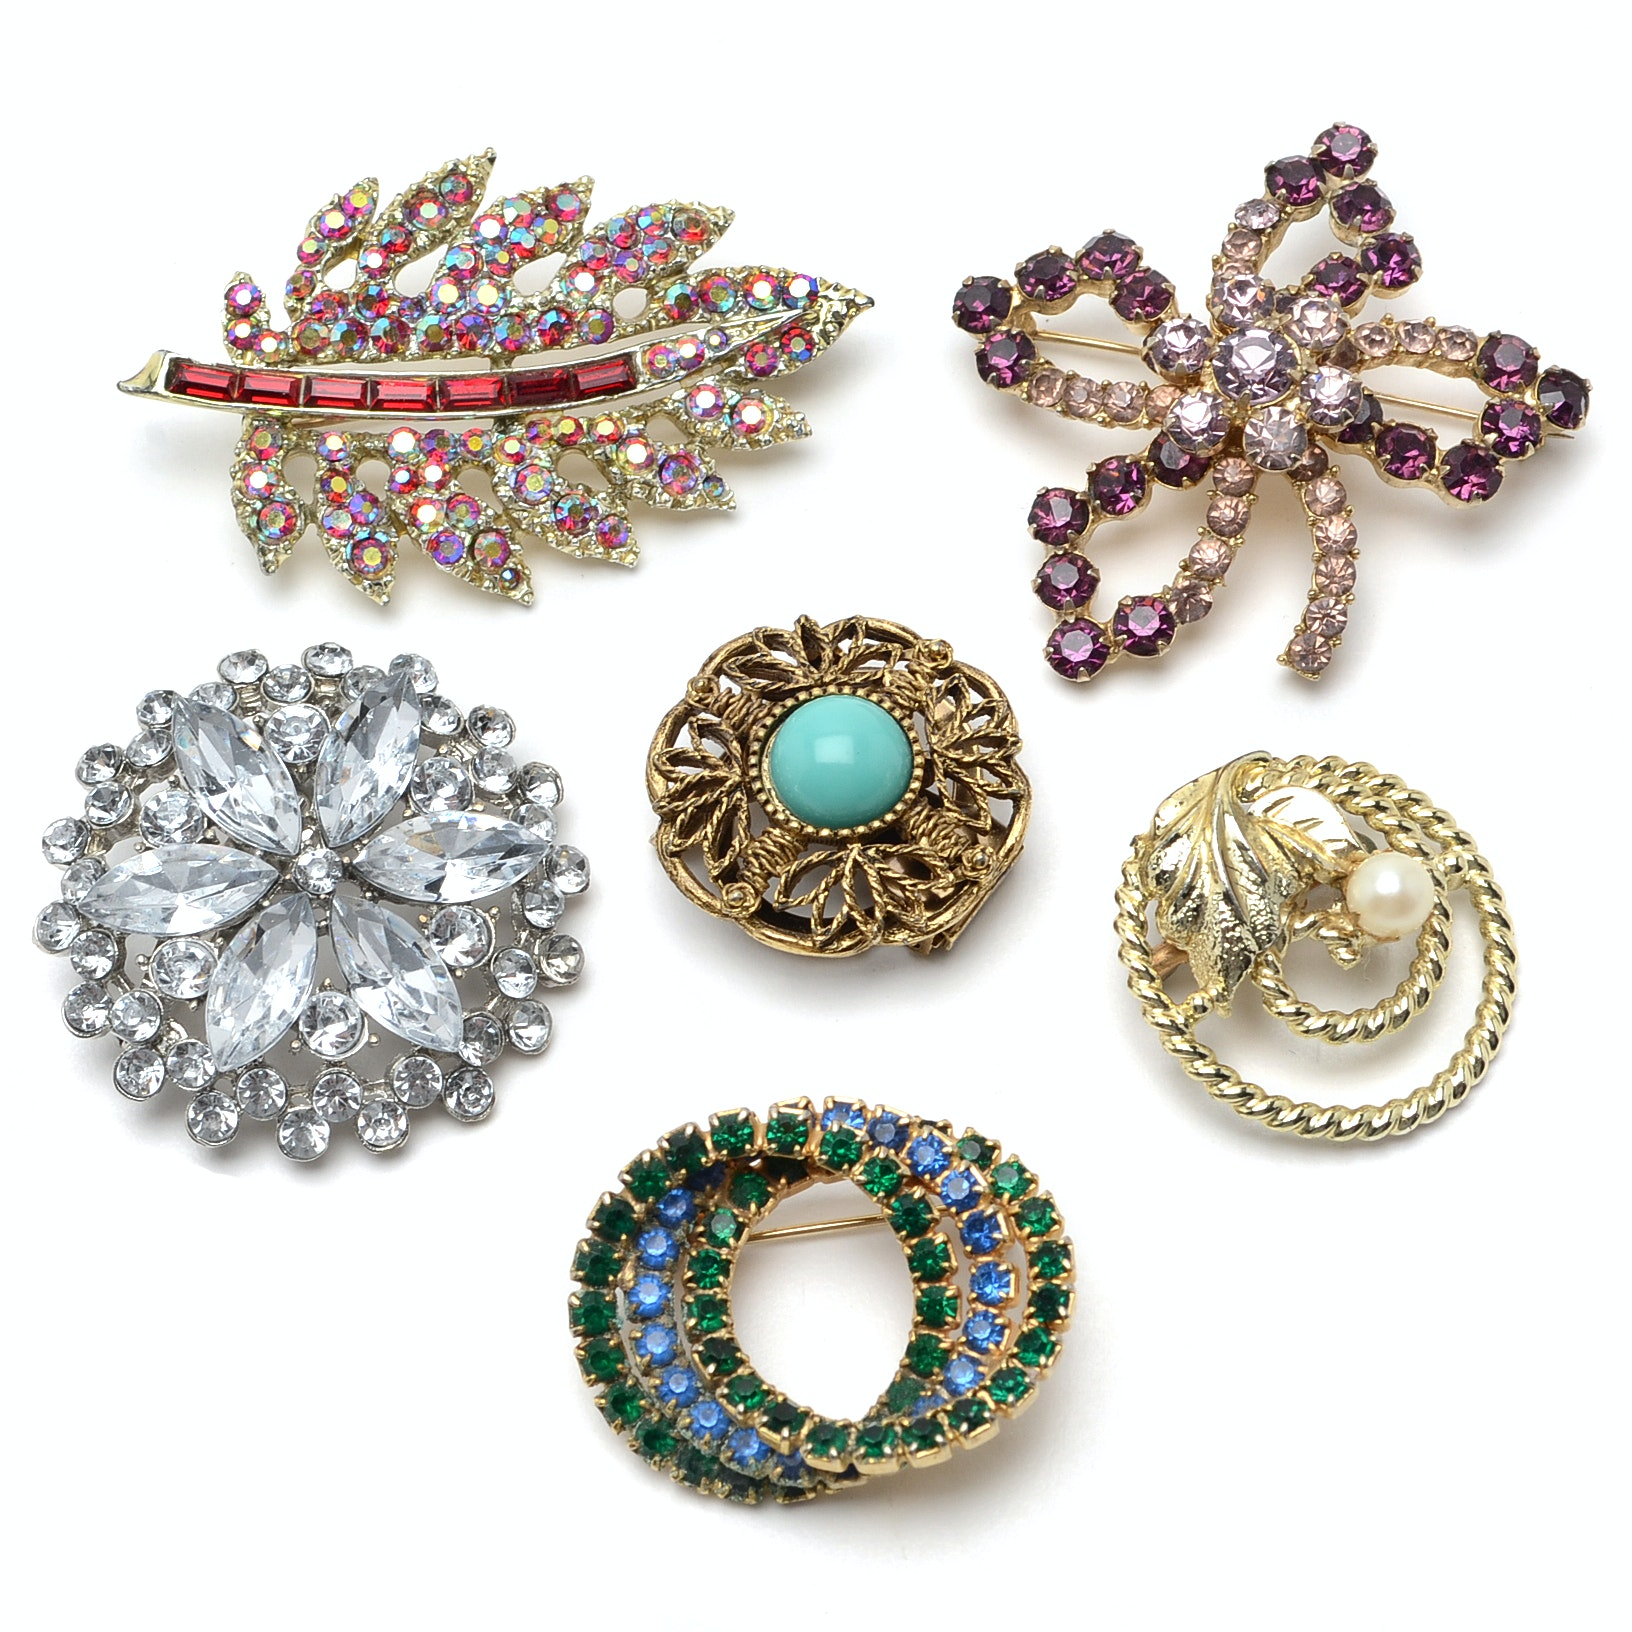 Assortment of Costume Brooches